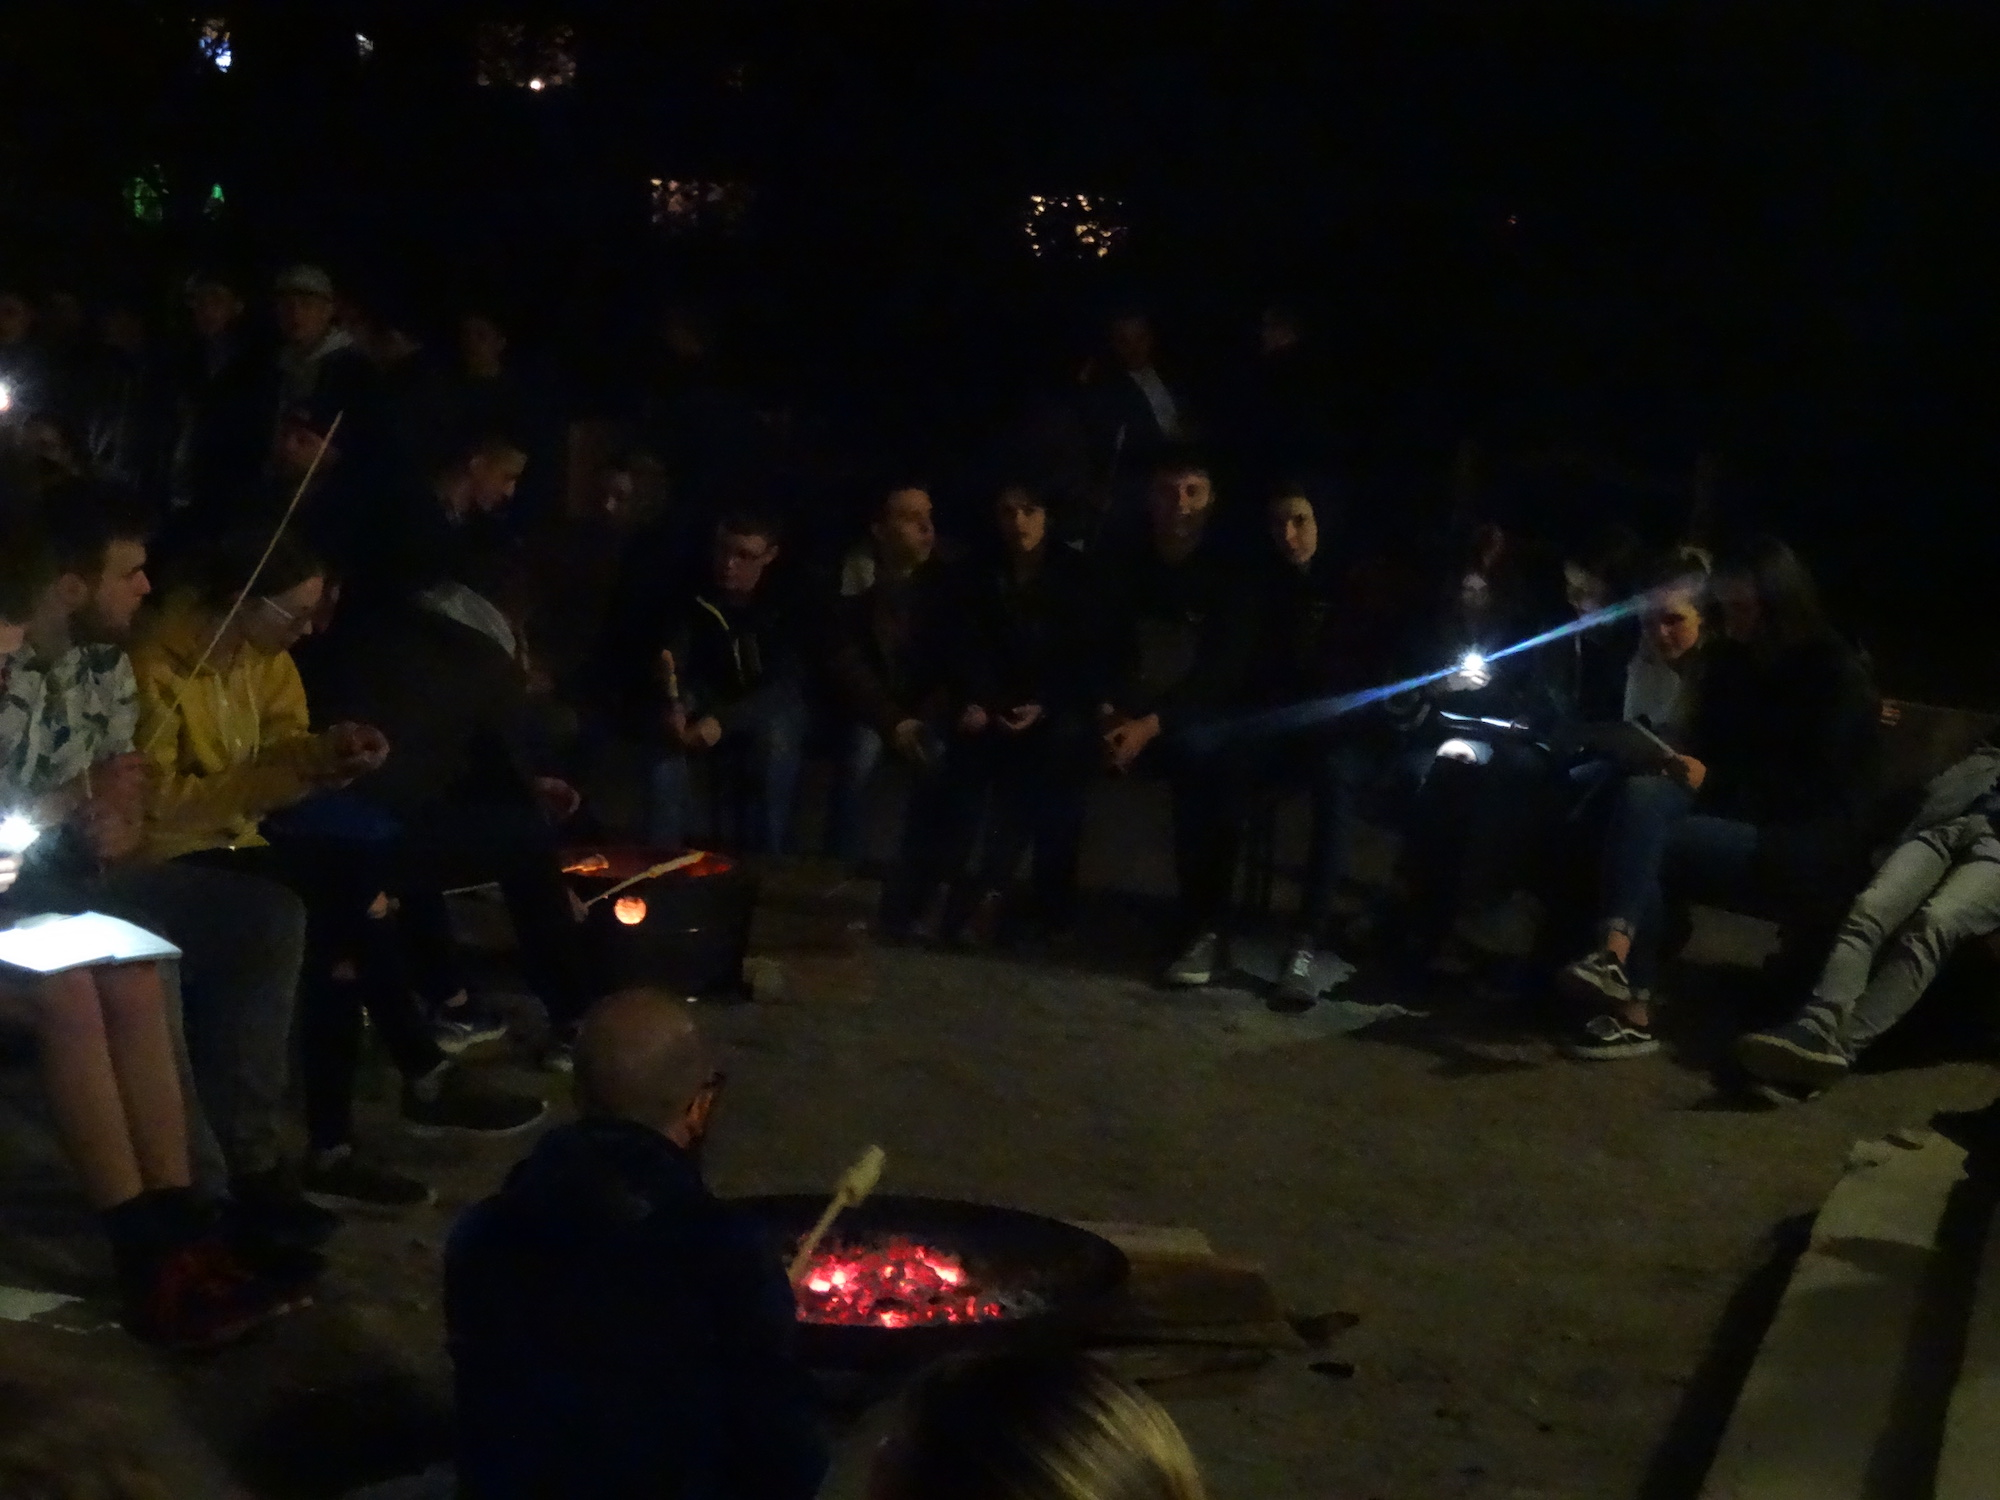 OJT'19 - OsterFire